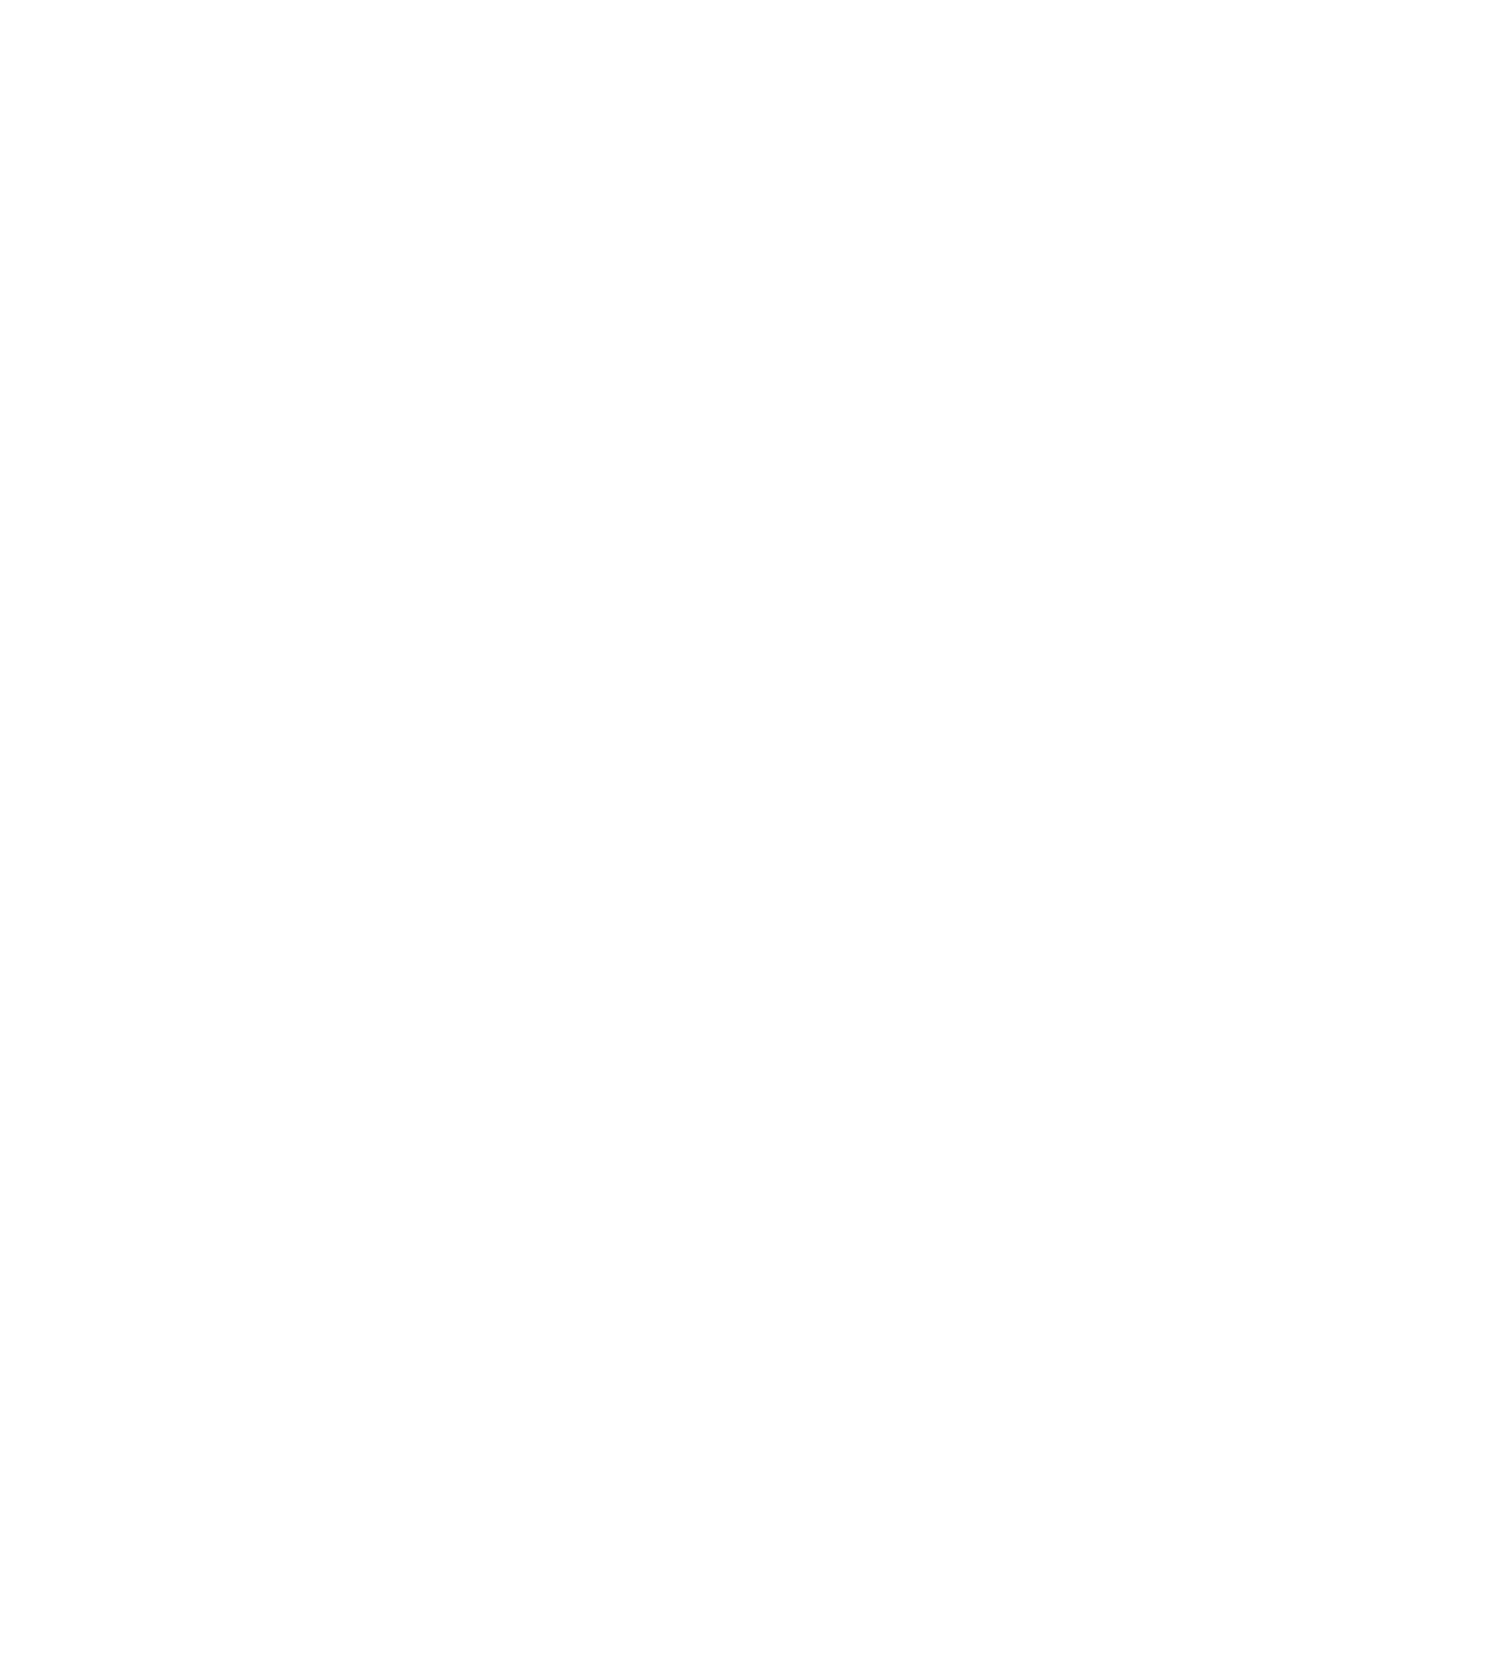 Franciscan Roche Foundation